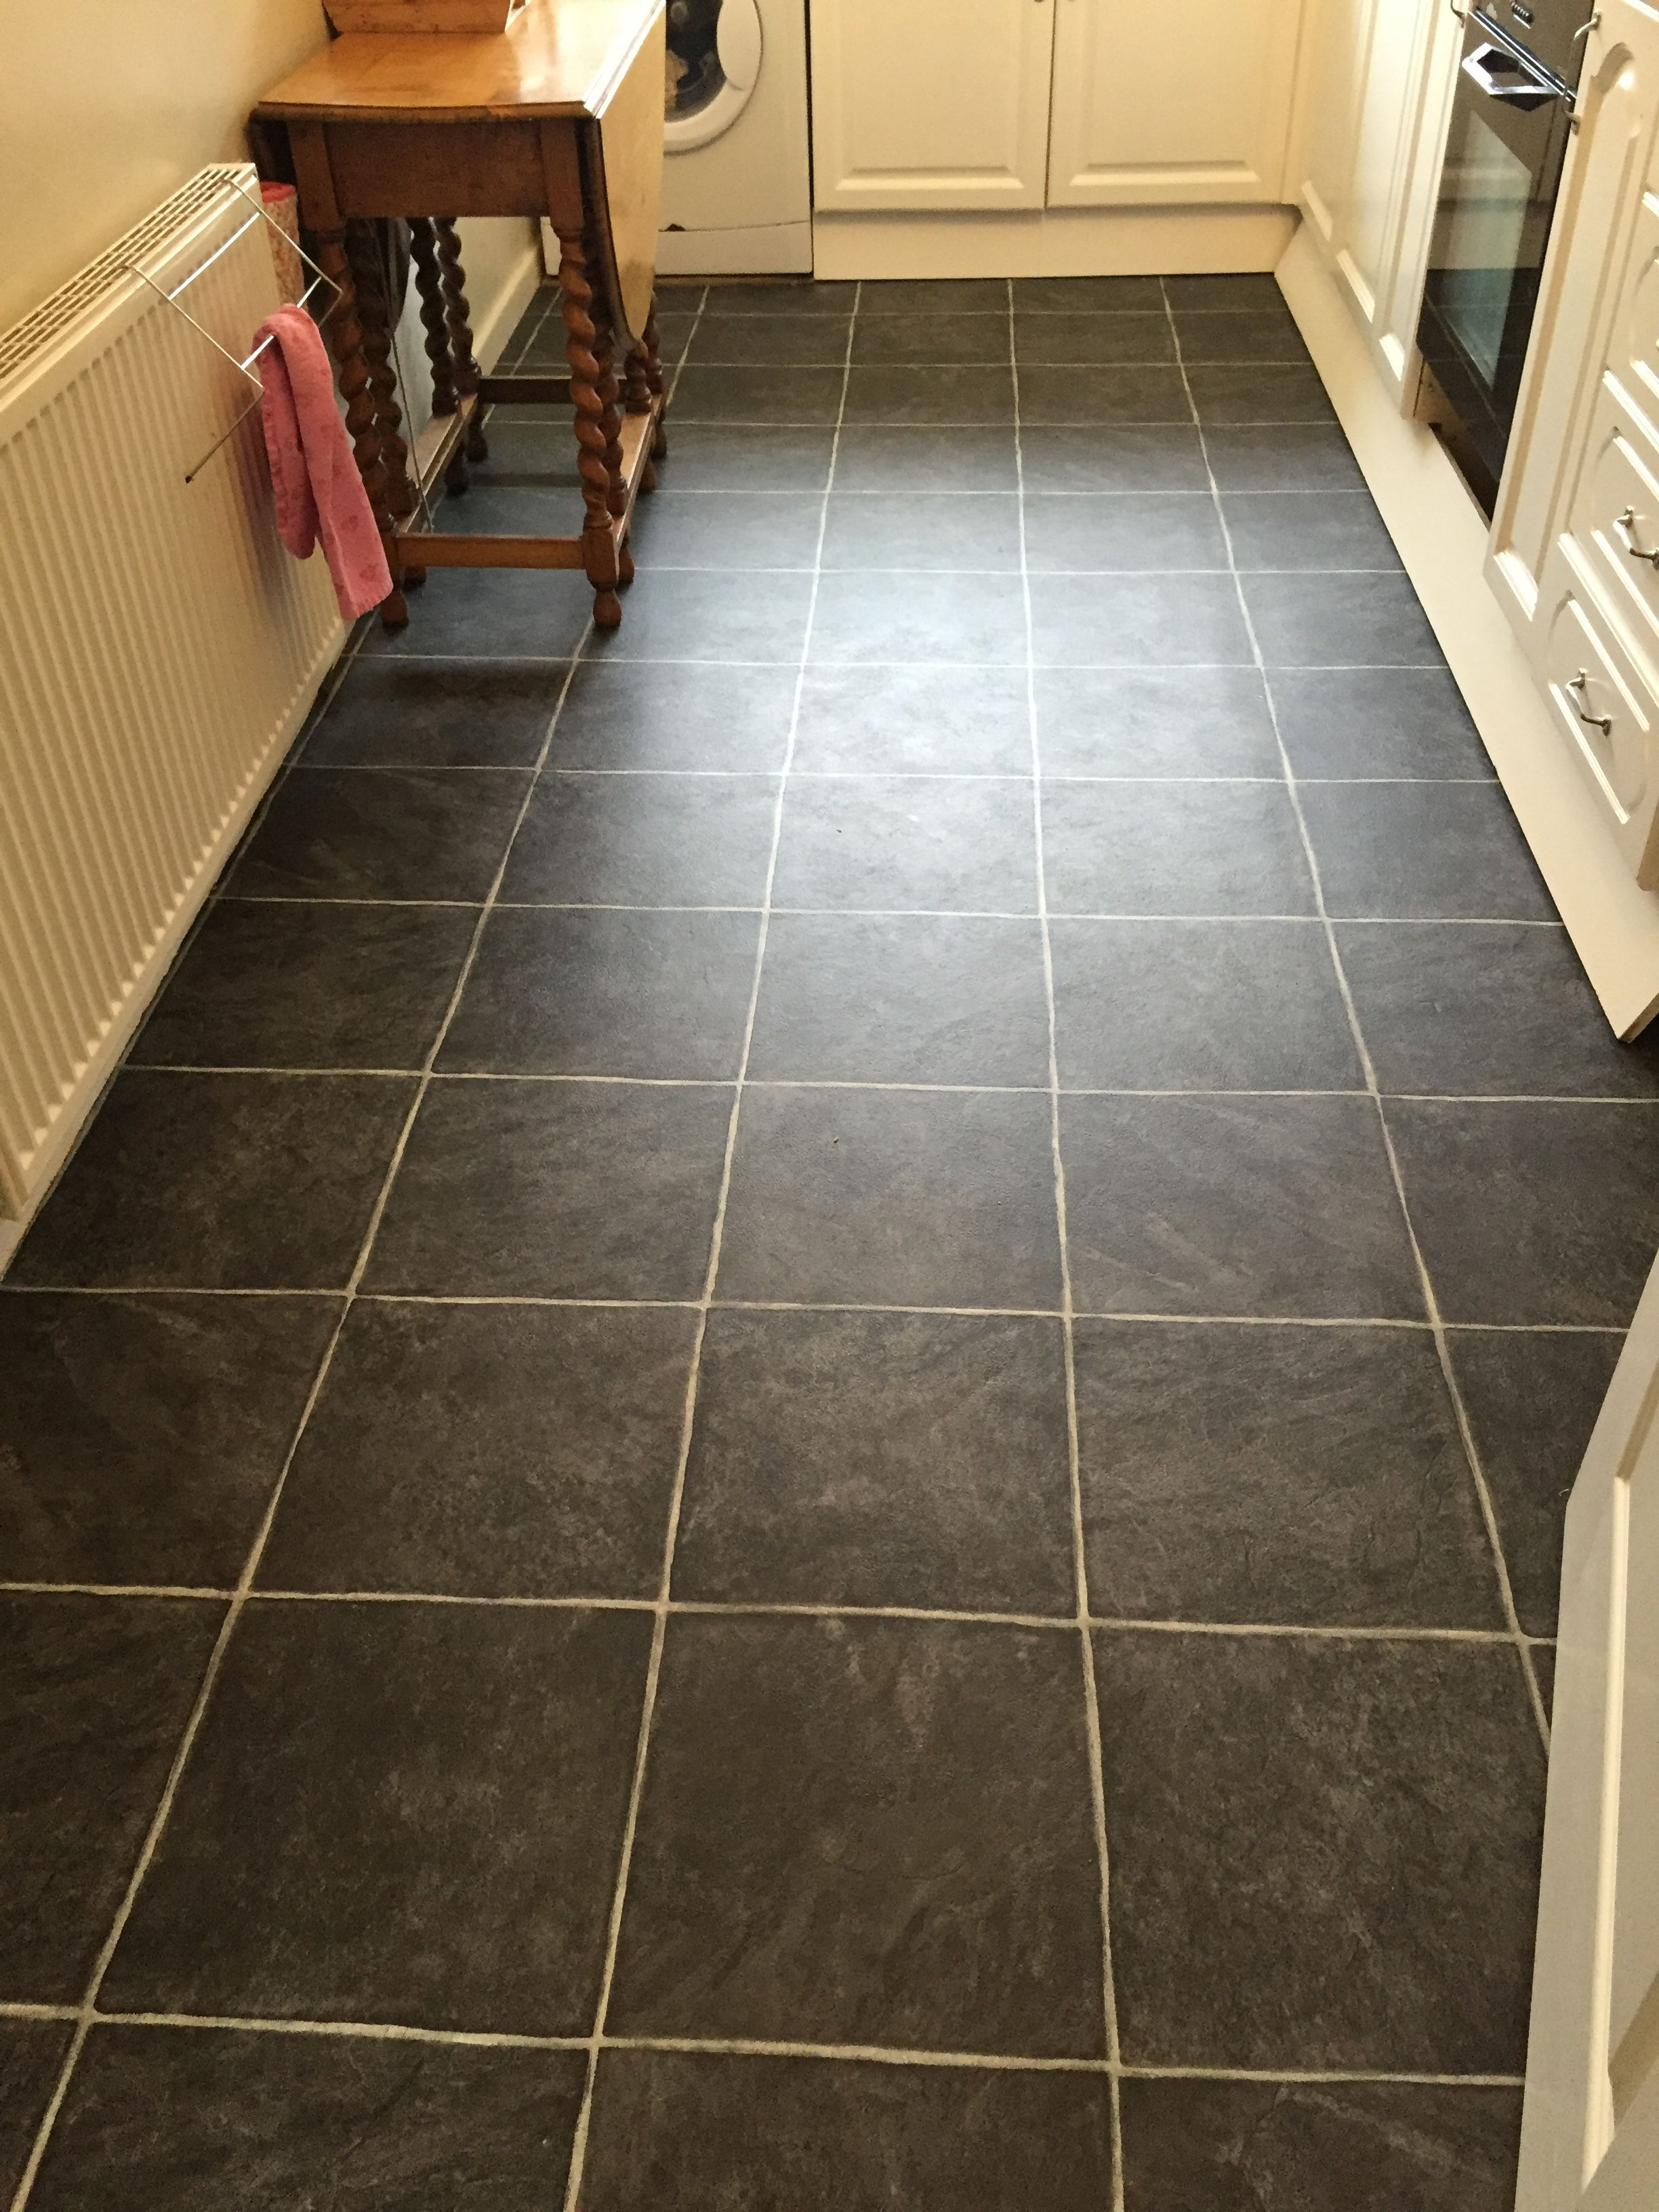 Black tile effect vinyl flooring fitted into a kitchen in stockport black tile effect vinyl flooring fitted into a kitchen in stockport cheshire dailygadgetfo Image collections